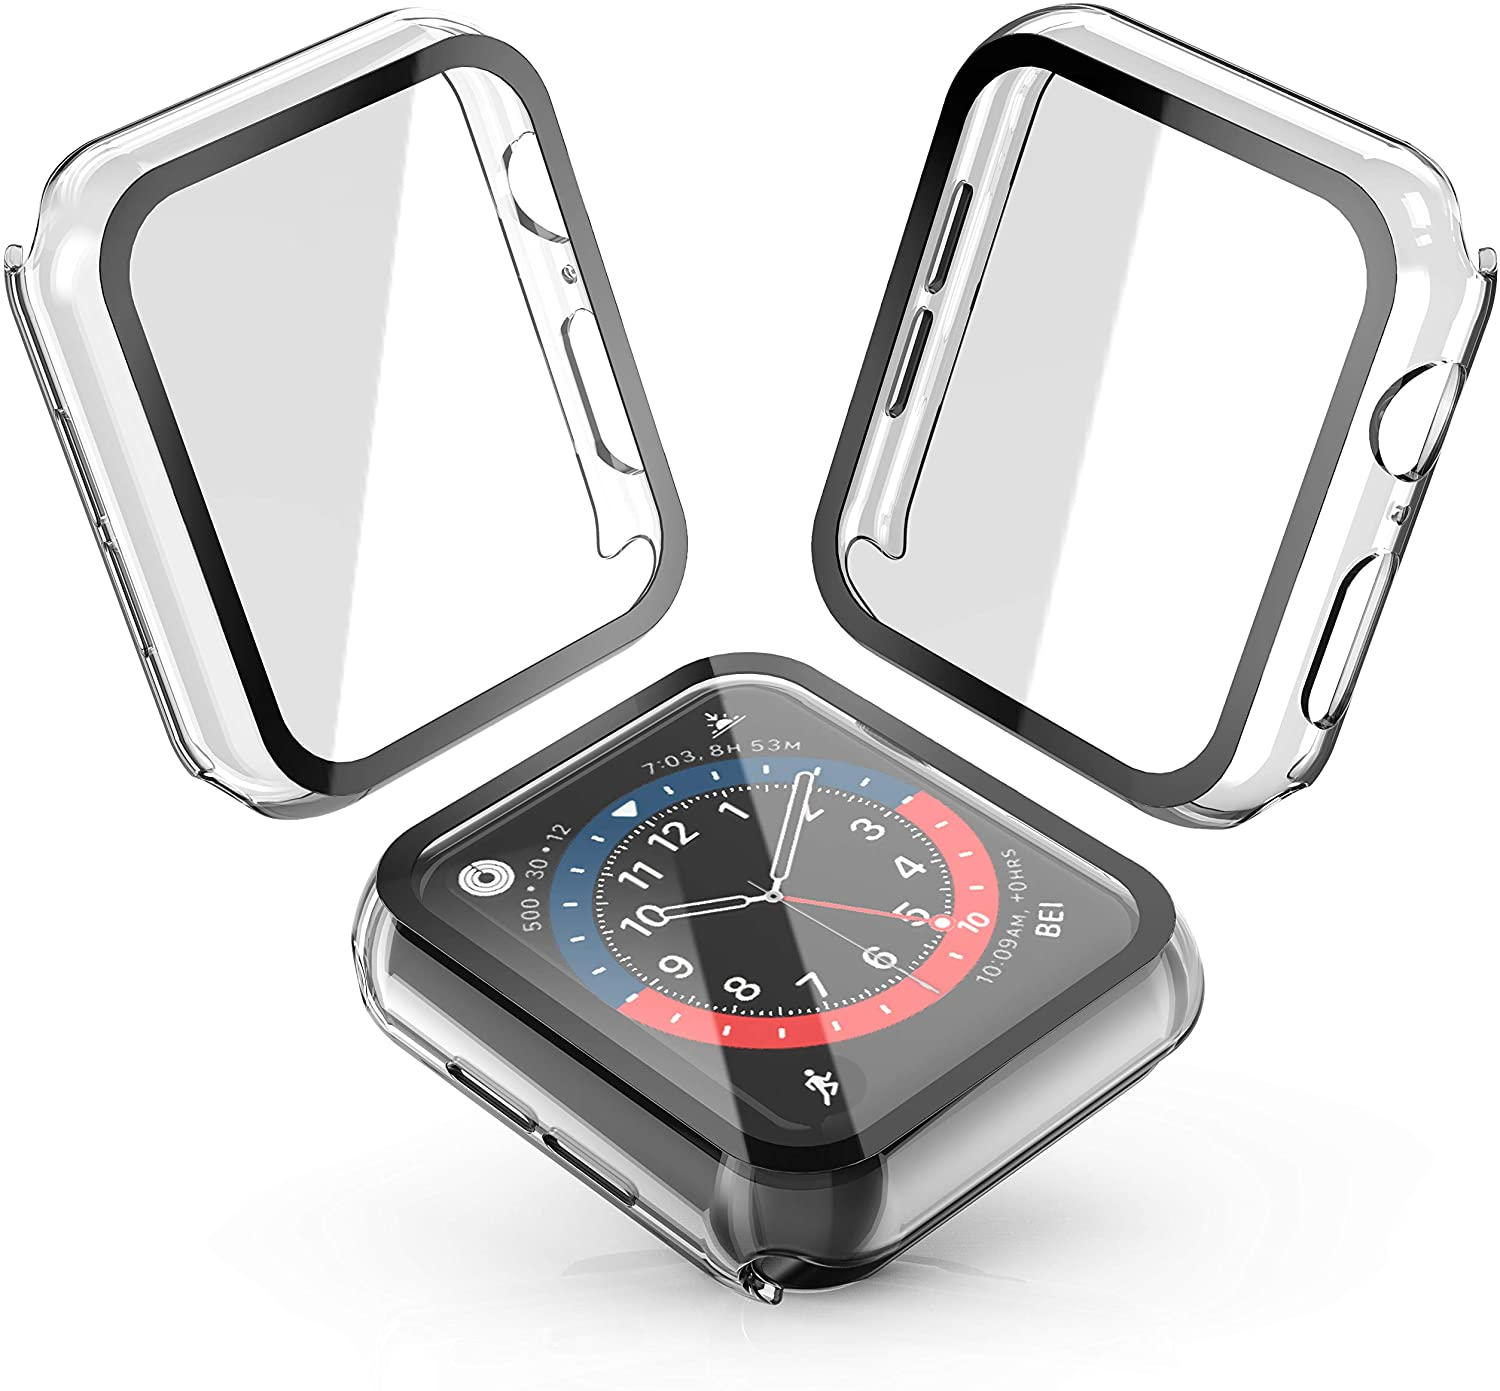 Julk Hard Case for Apple Watch Series 6 / SE/Series 5 / Series 4 40mm, 2020 New iWatch PC Overall Protective Cover with Slim Tempered Glass Screen Protector (2-Pack Transparent)